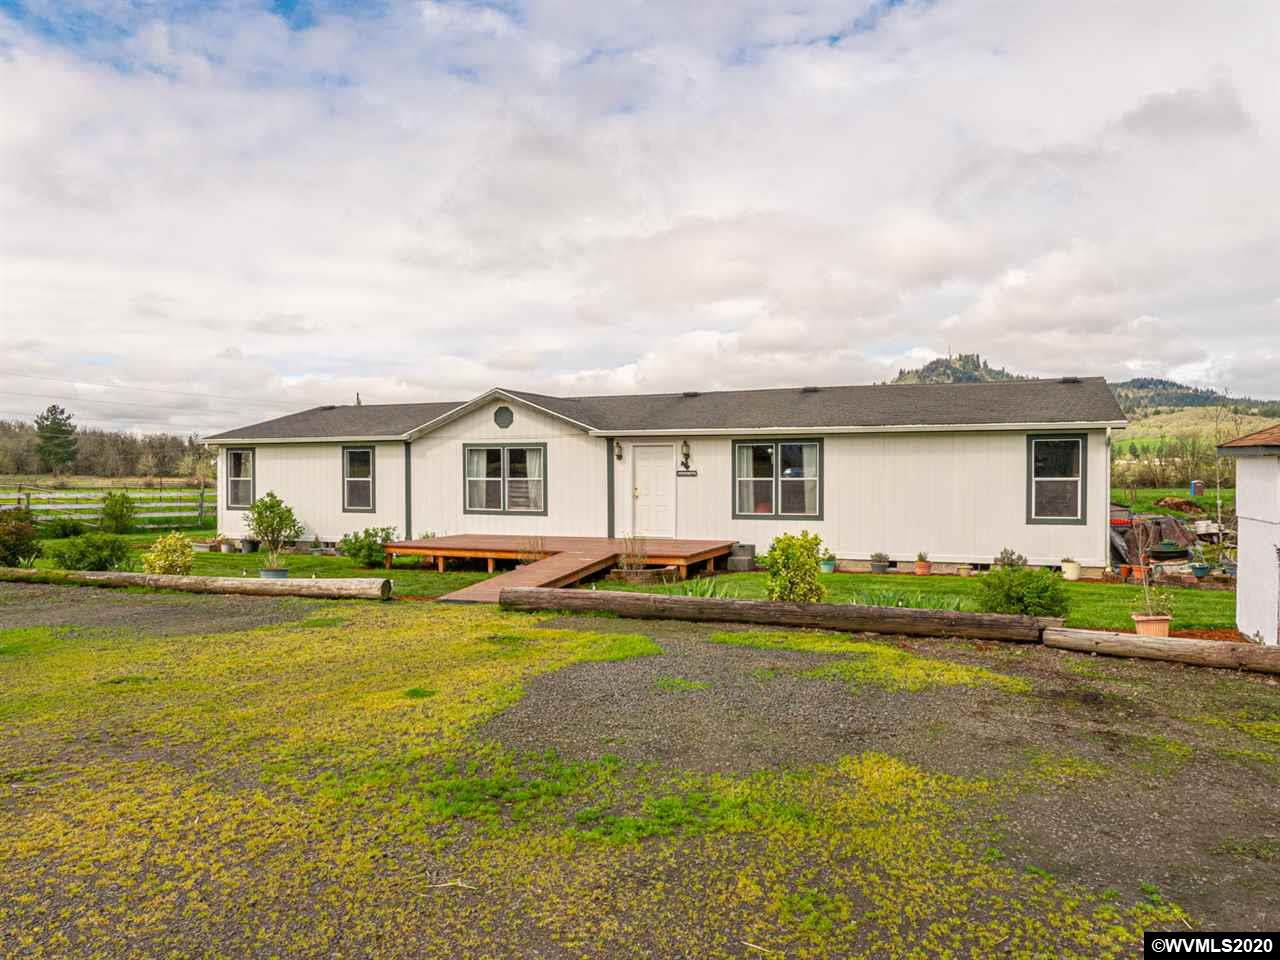 Beautiful country setting & views of Peterson Butte just minutes from town! This 5 acre property is flat, usable, & has a 36x48 barn w/ 4 stalls & a 6' overhang on one side making it great for animals. The spacious 2000+ sq. ft. home has both living & family rooms & a den that could be used as an additional bedroom. The large master has dual sinks, soaking tub, separate walk-in shower, linen storage, & walk-in closet. Complete w/ forced air heat & central A/C. Desirable area & wonderful commuter location.